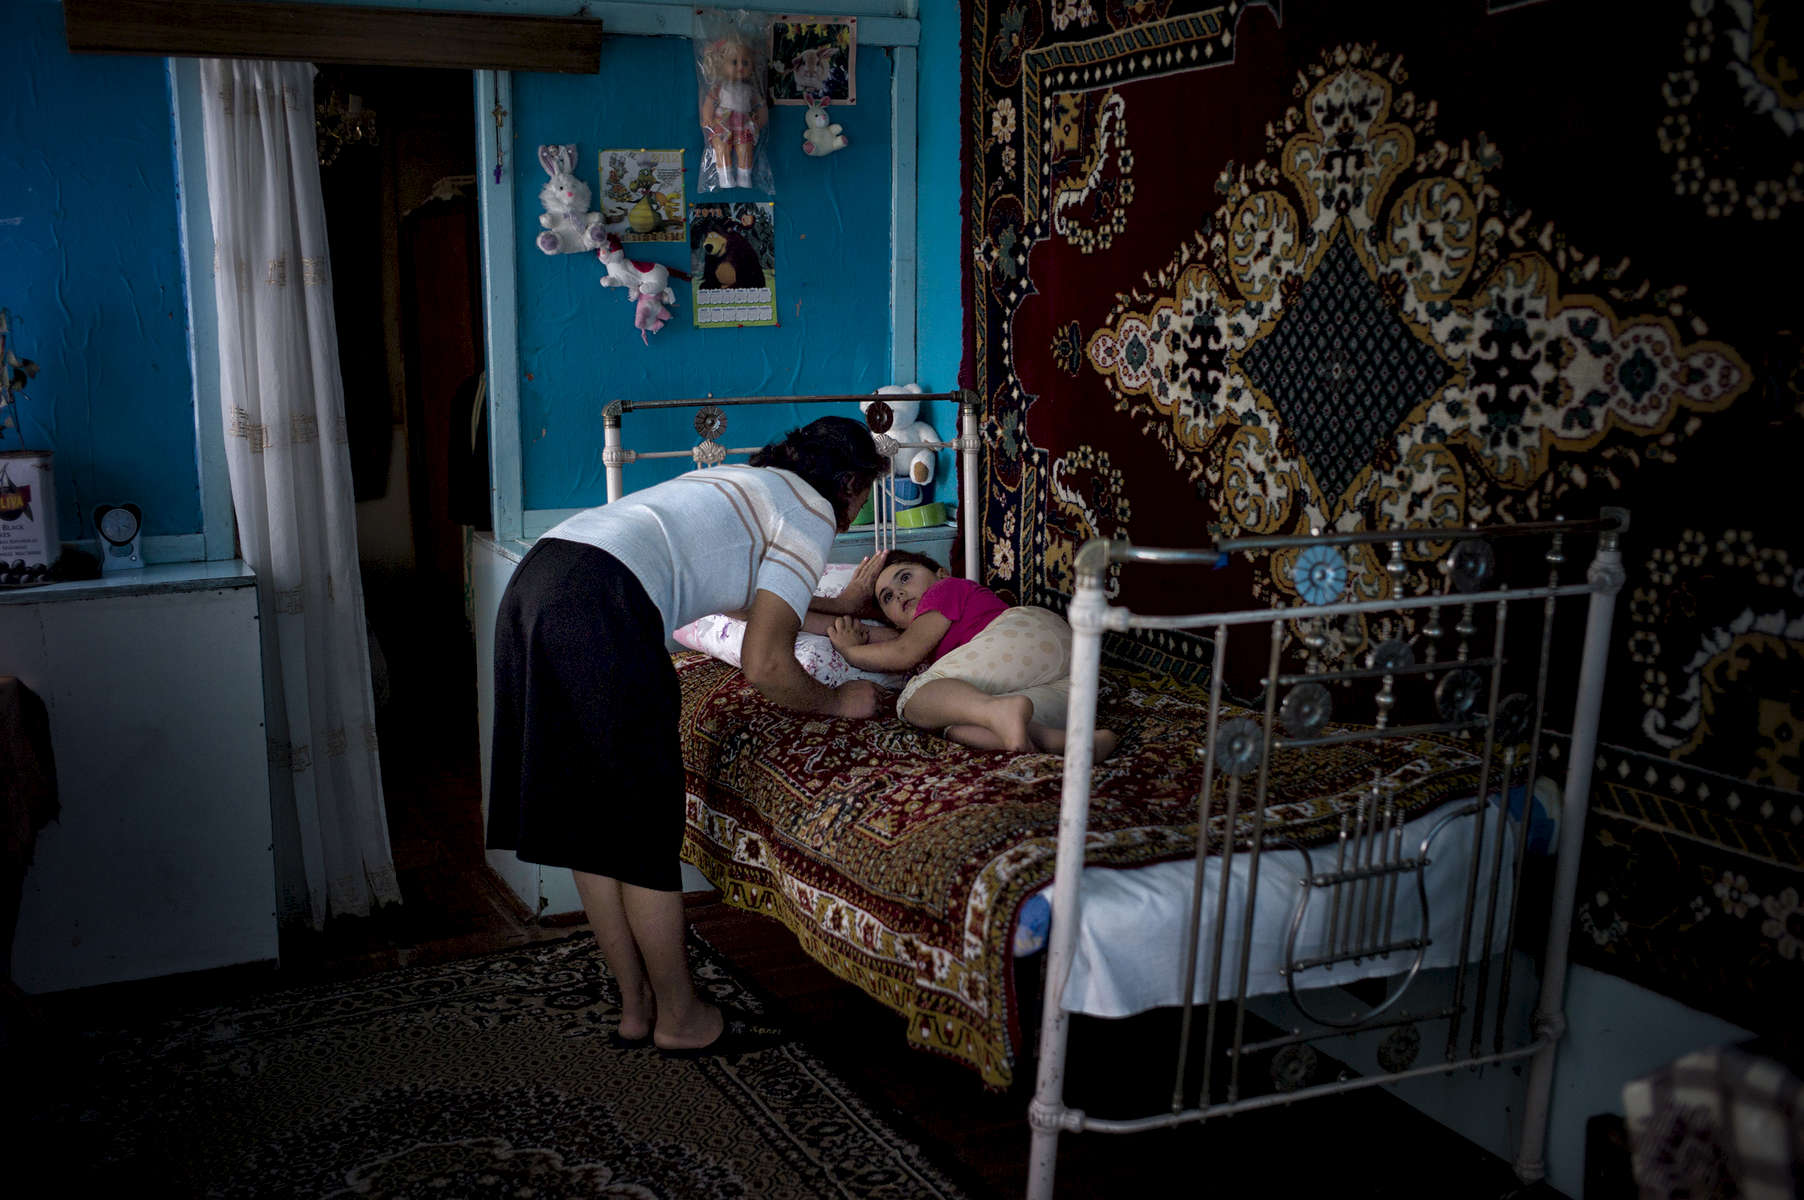 June 04, 2013: MYASNIKYAN, ARMENIA- Anoush Gasparyan watches her five year old sleeping daughter Anahid in their home in the village of Myasnikyan.  The family, which is struggling after a series of accidents and health issues including snake bite and lightning strikes,  receives help from the diaspora-based Children of Armenia Fund (COAF).  COAF was founded by Istanbul-born, American-based Armenian Dr. Garo Armen, who was struck by the depths of poverty in the Aramir region of Armenia and resolved to do something about it.  The organization, which is largely supported by Diasporan Armenians, mostly funds schools, but also assists in providing a more comprehensive social care to the families of the village children. Photo by Scout Tufankjian/Polaris